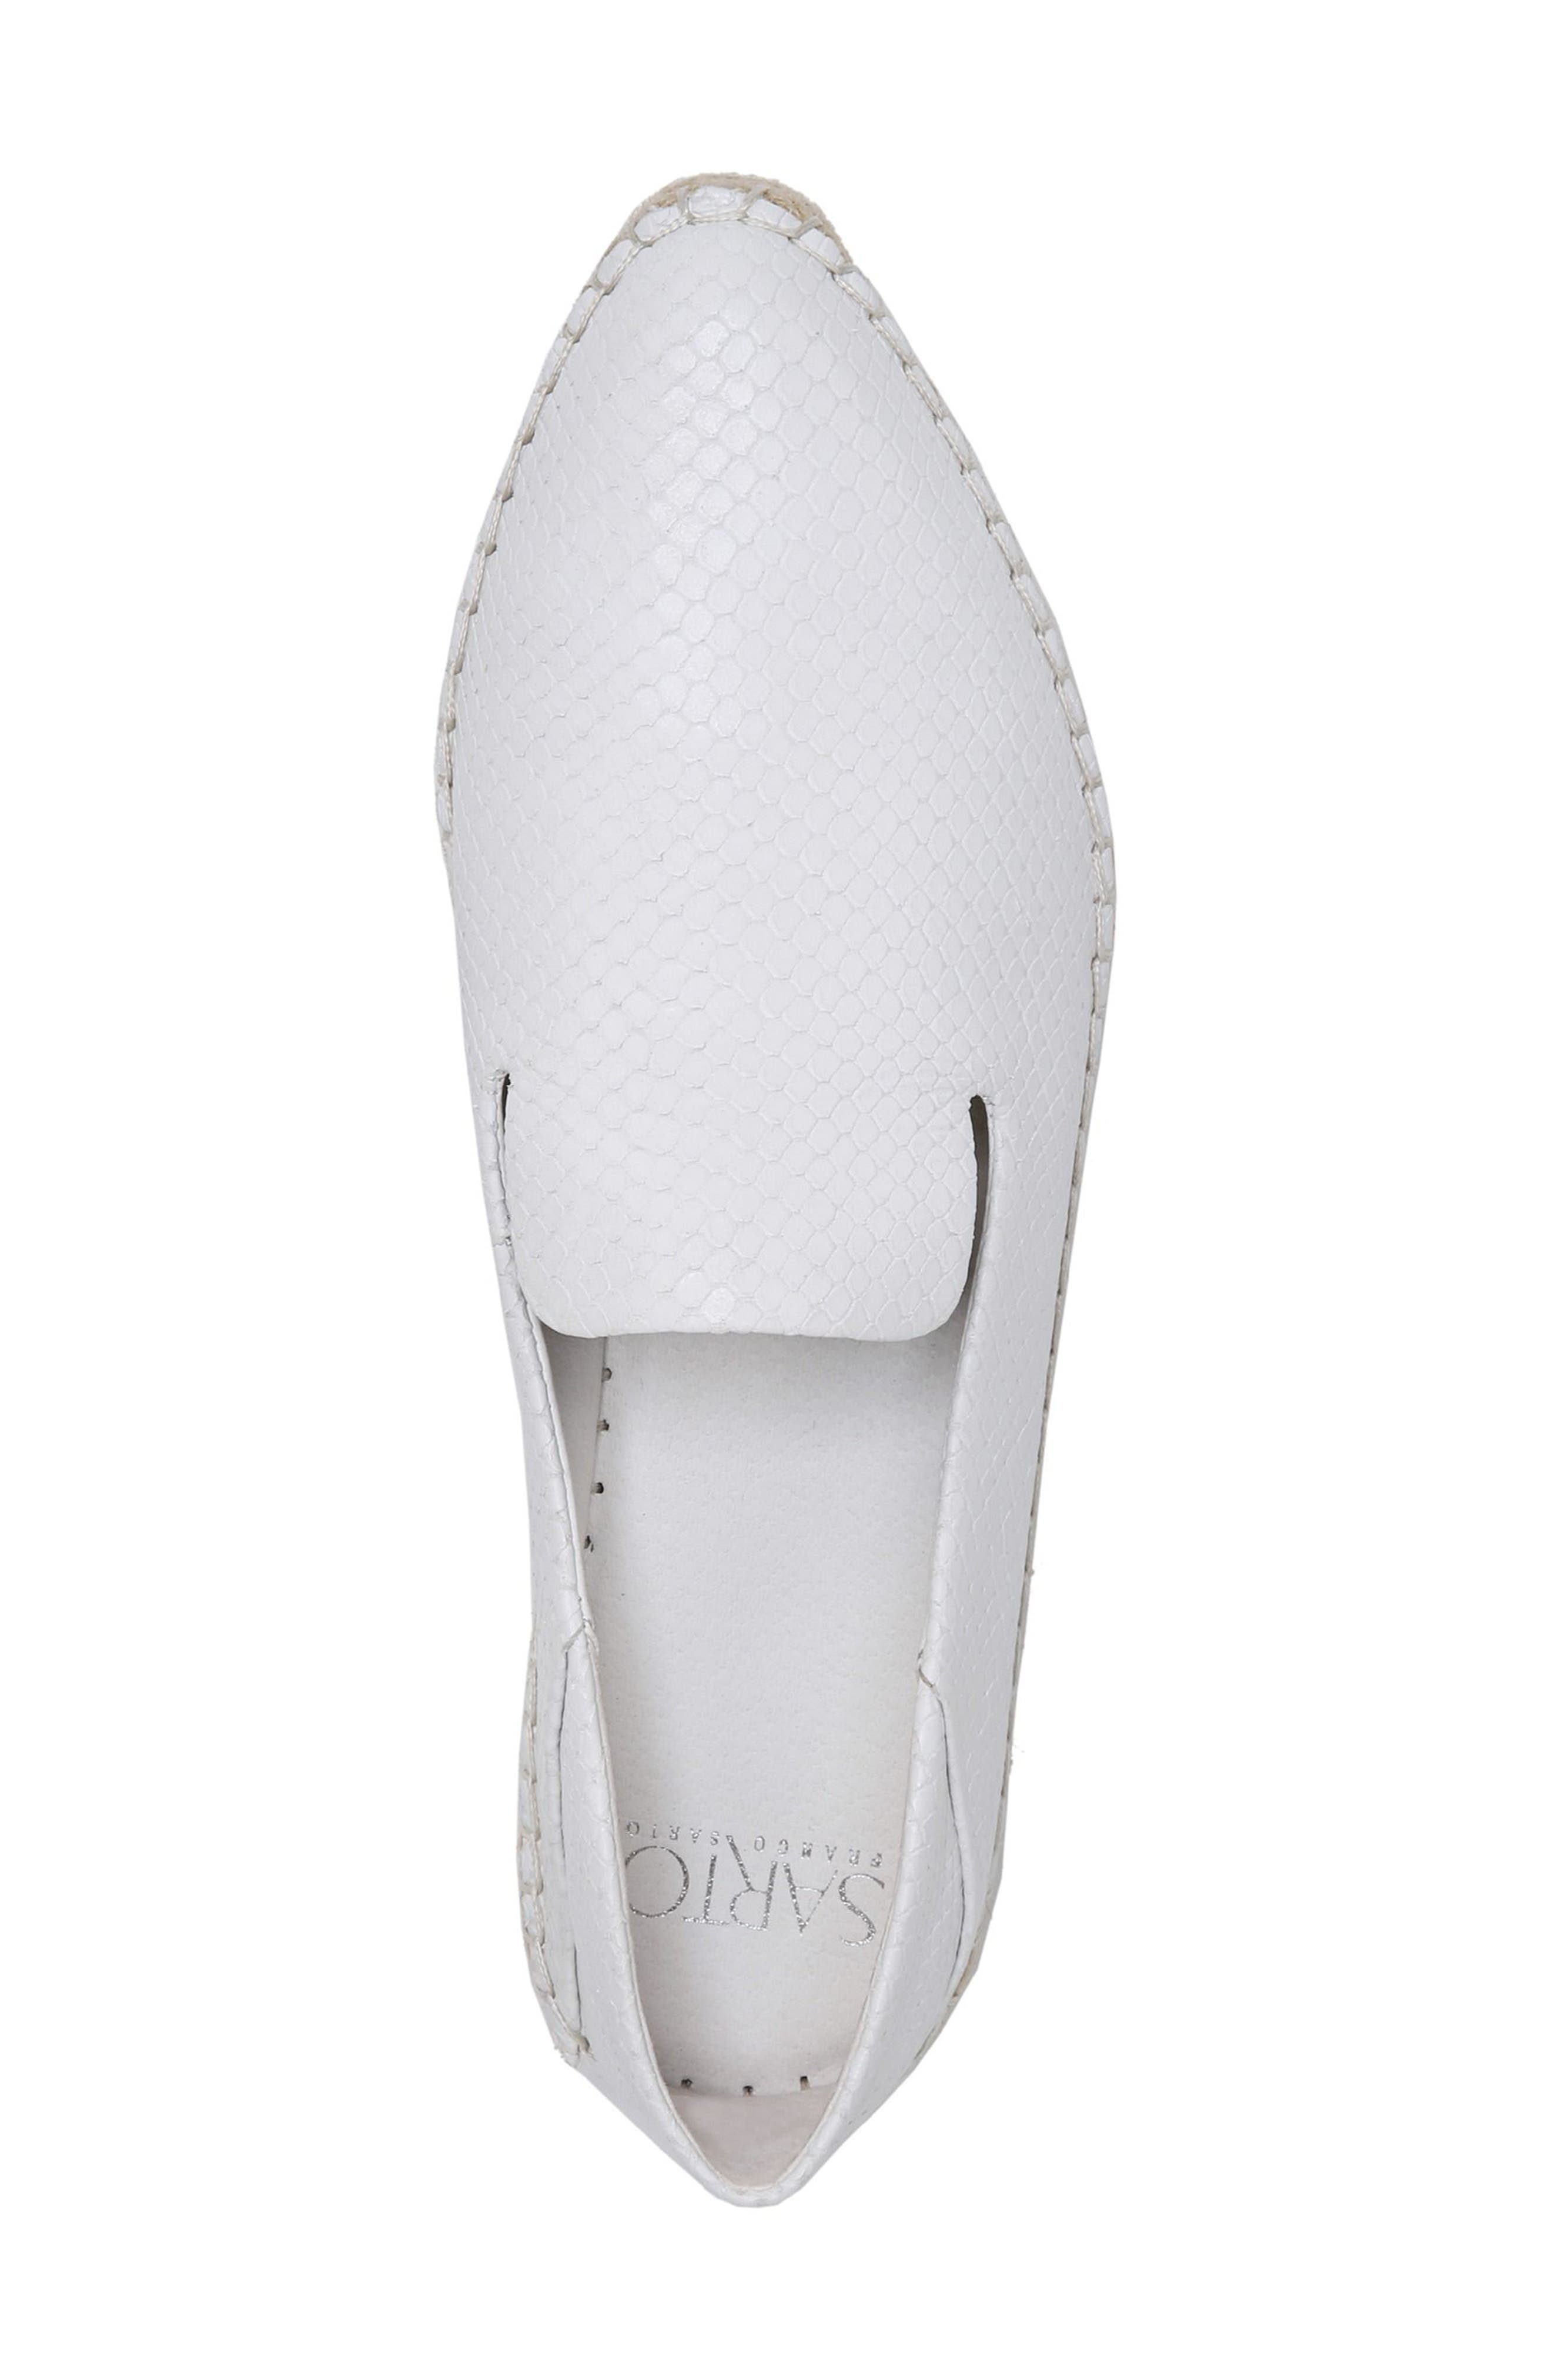 Eviana Espadrille Loafer,                             Alternate thumbnail 5, color,                             Blanca Snake Print Leather